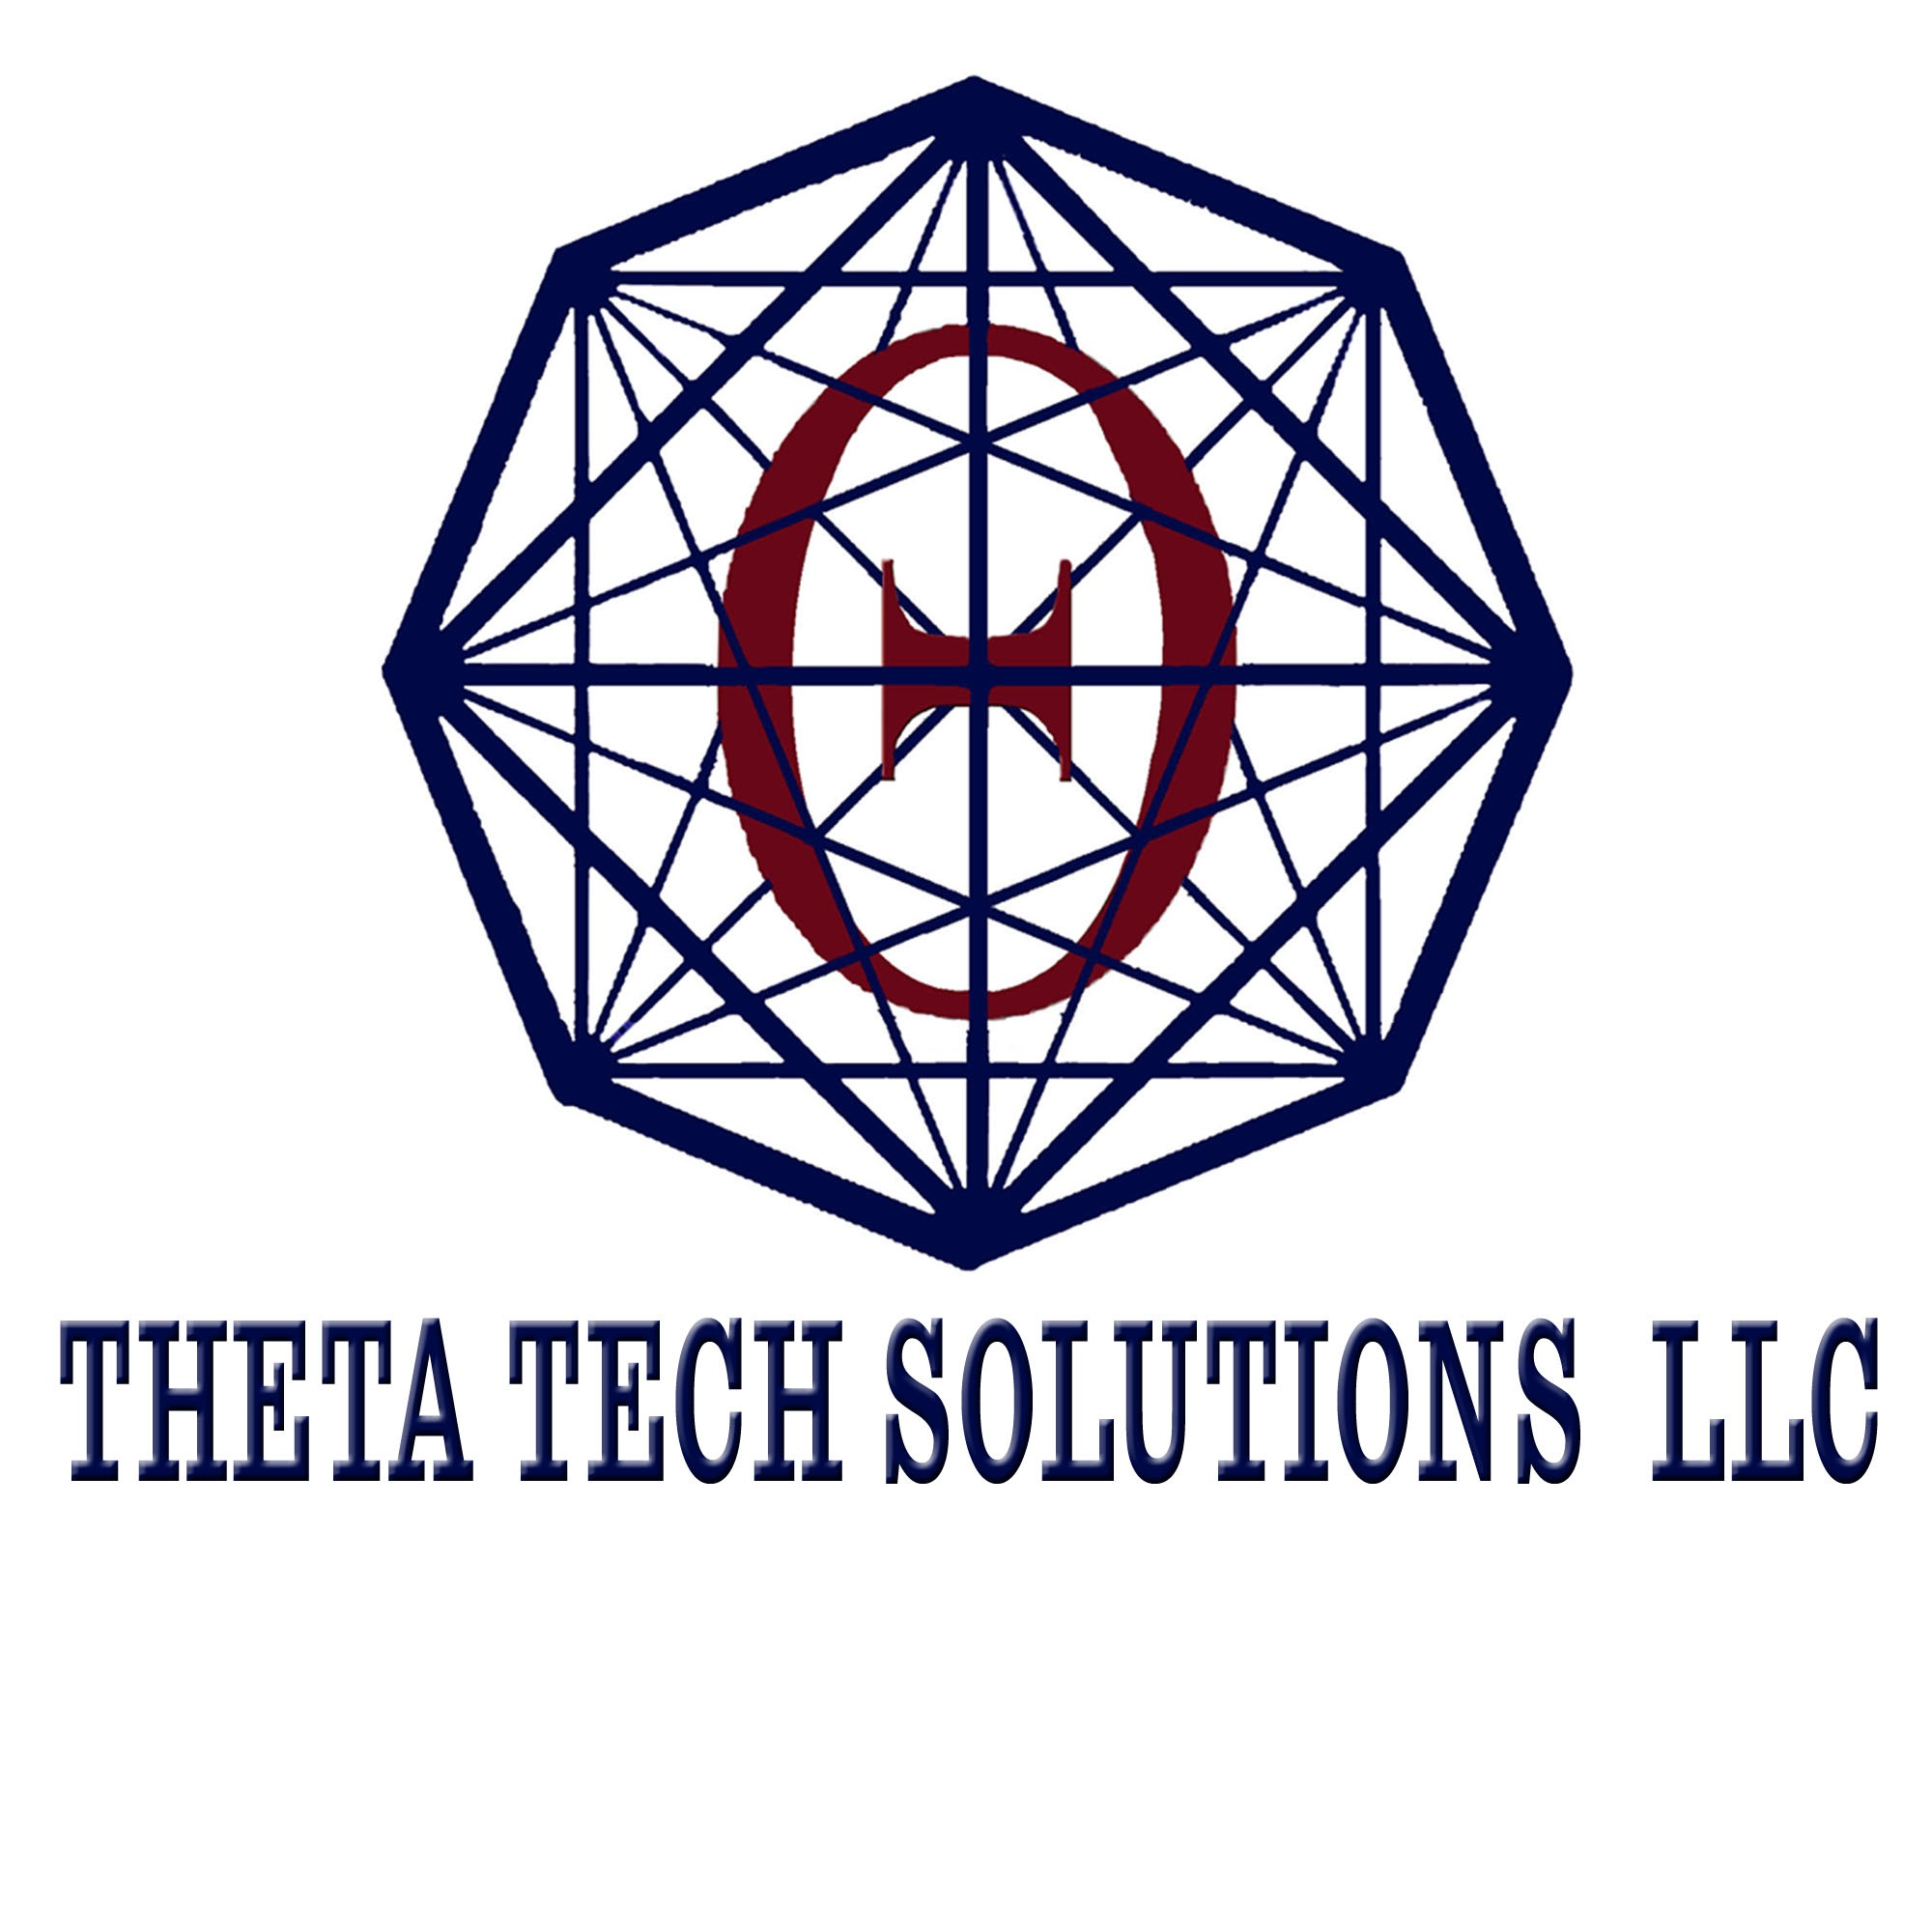 Theta Tech Solutions LLC